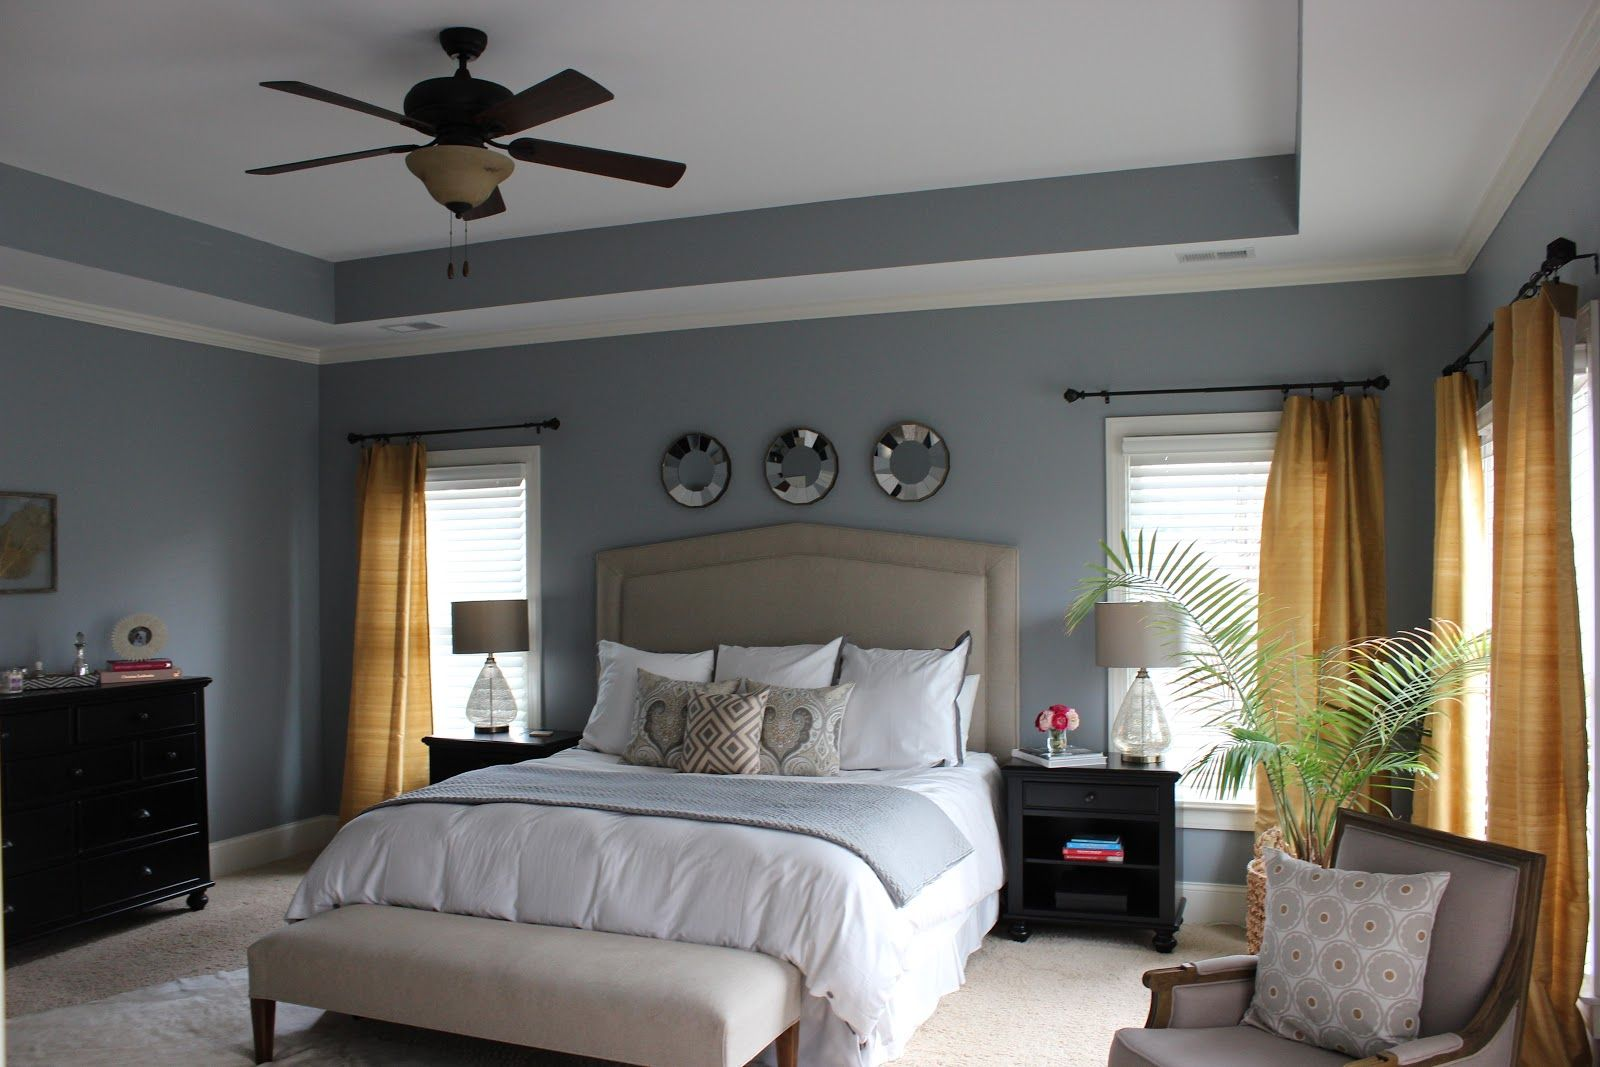 Find this Pin and more on Decor Ideas. Benjamin Moore Gull Wing Grey Walls  Great Master Bedroom Color